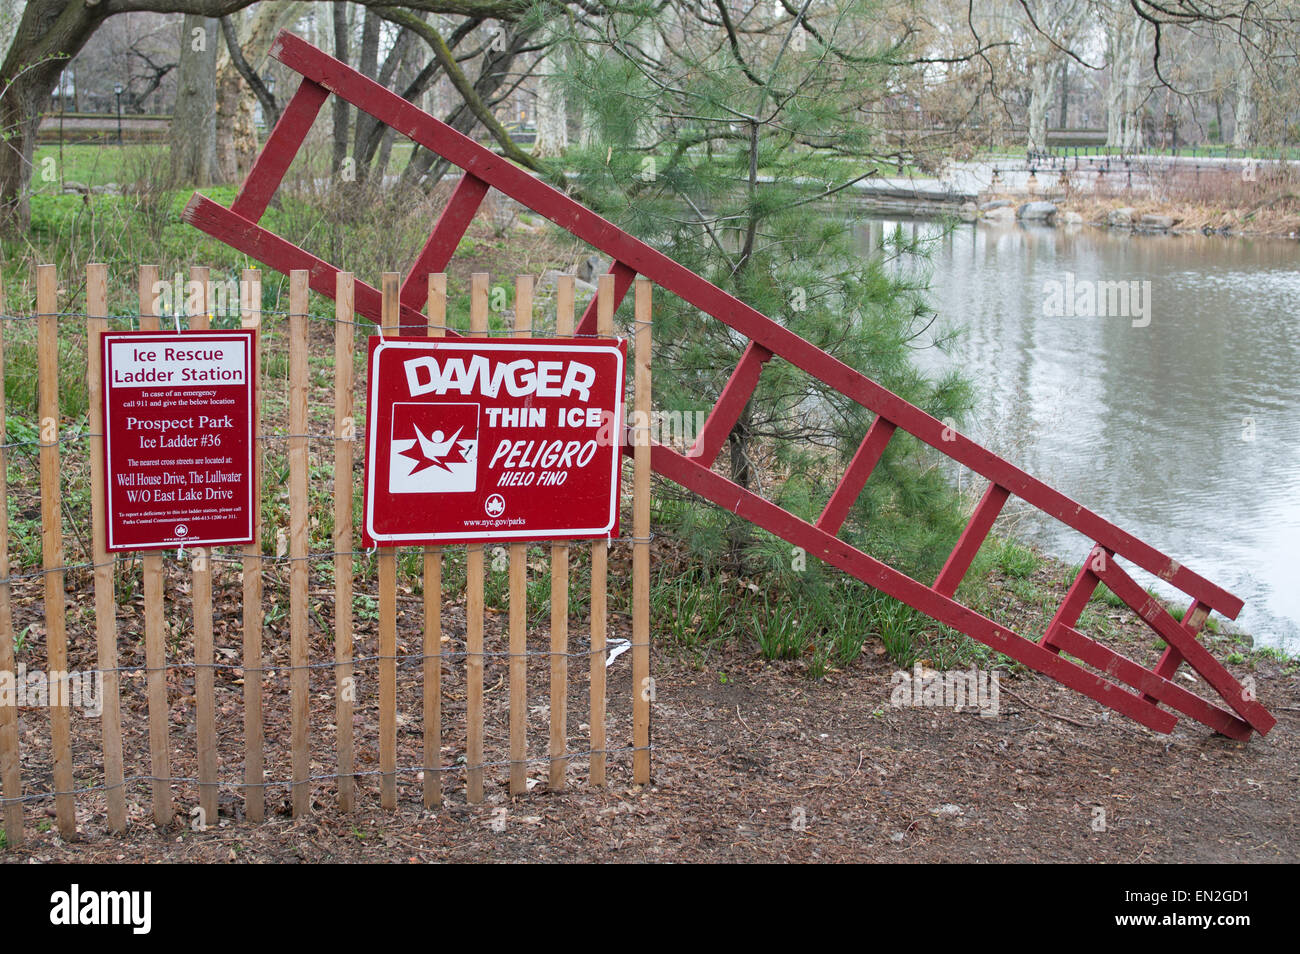 Ice rescue station ladder and Danger Thin Ice sign,  in Prospect Park Brooklyn, NYC, USA - Stock Image